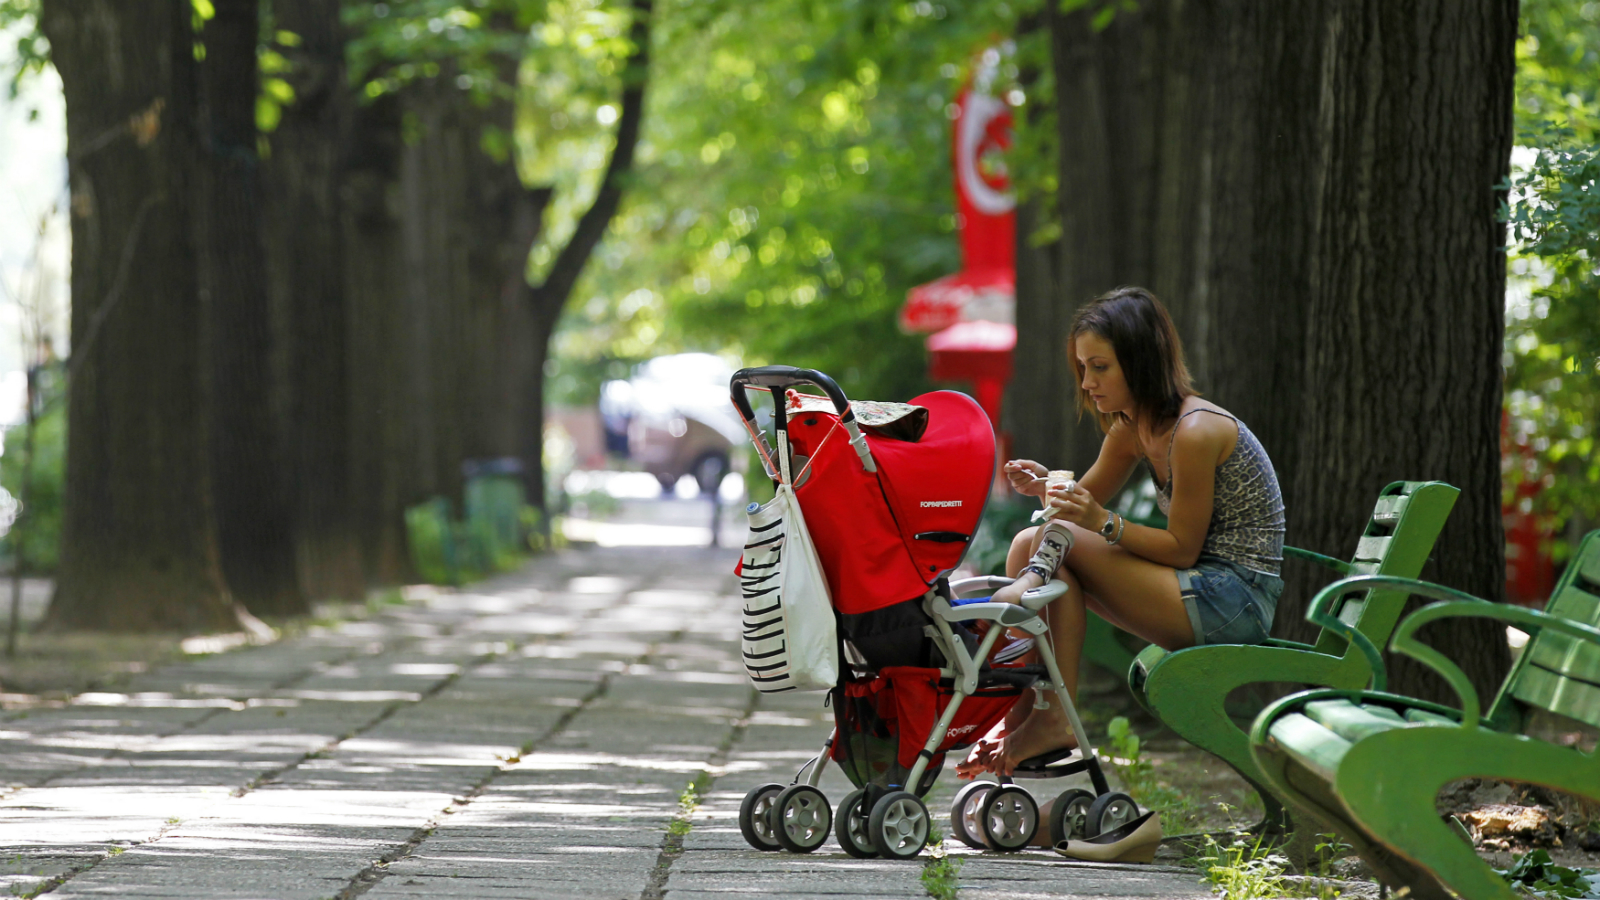 A woman feeds her child in a park in Bucharest June 7, 2013. REUTERS/Bogdan Cristel (ROMANIA - Tags: SOCIETY)